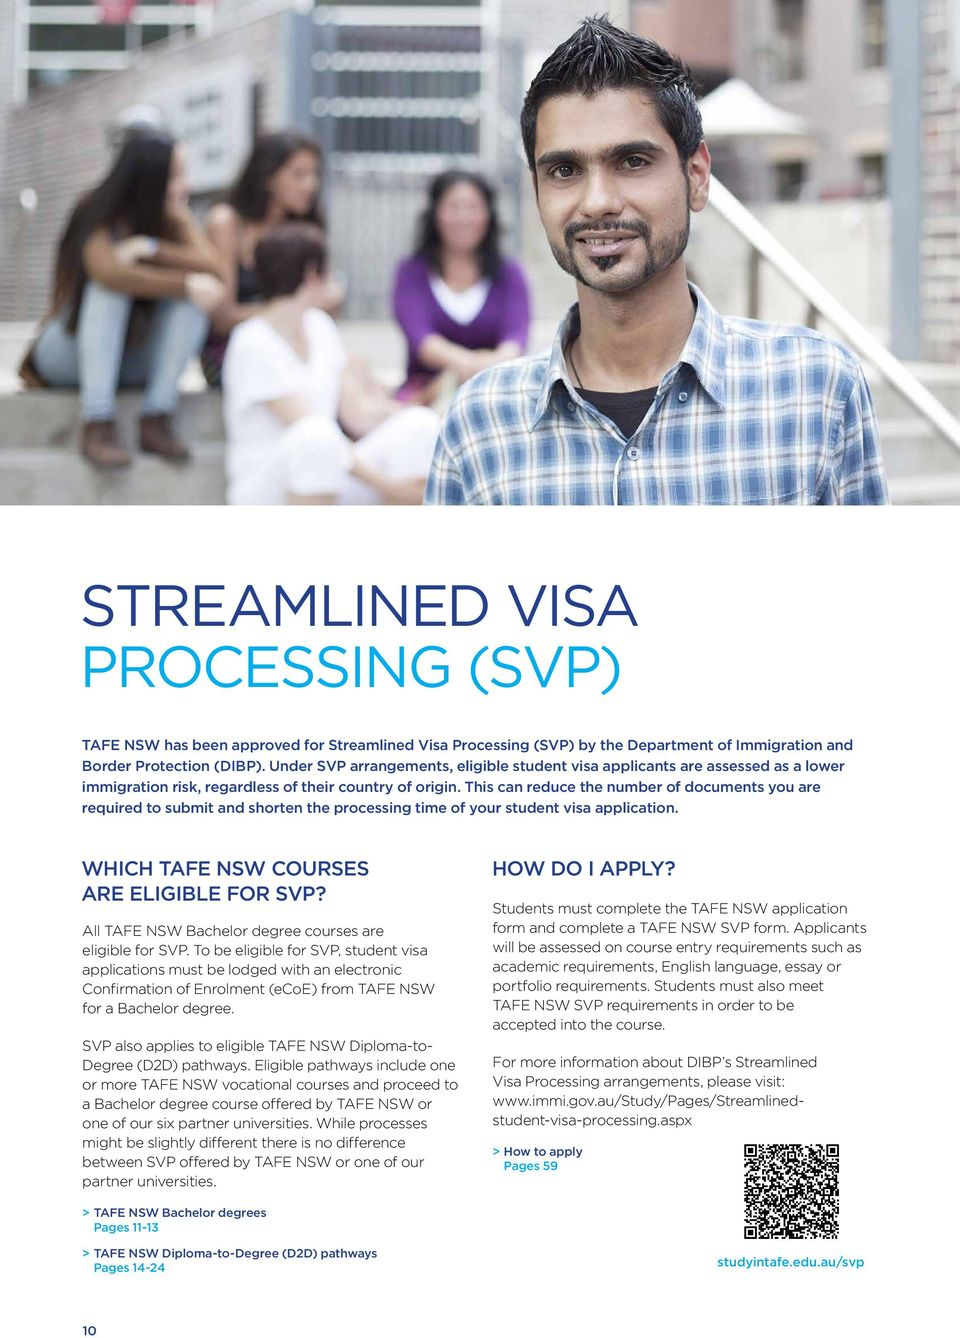 This can reduce the number of documents you are required to submit and shorten the processing time of your student visa application. WHICH COURSES ARE ELIGIBLE FOR SVP?